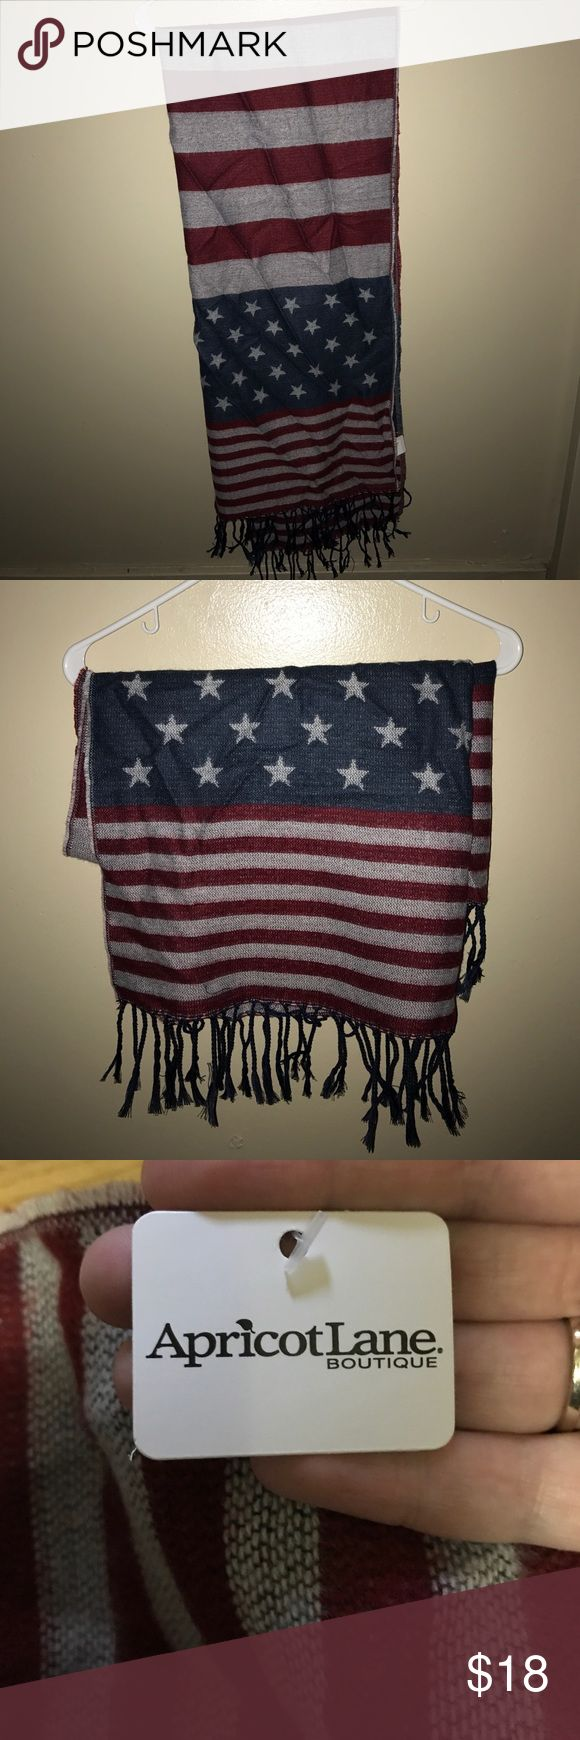 American Flag Scarf!! Fun American Flag Scarf!! Thick material! NEVER WORN! Tags still on!! Apricot Lane Boutique Accessories Scarves & Wraps